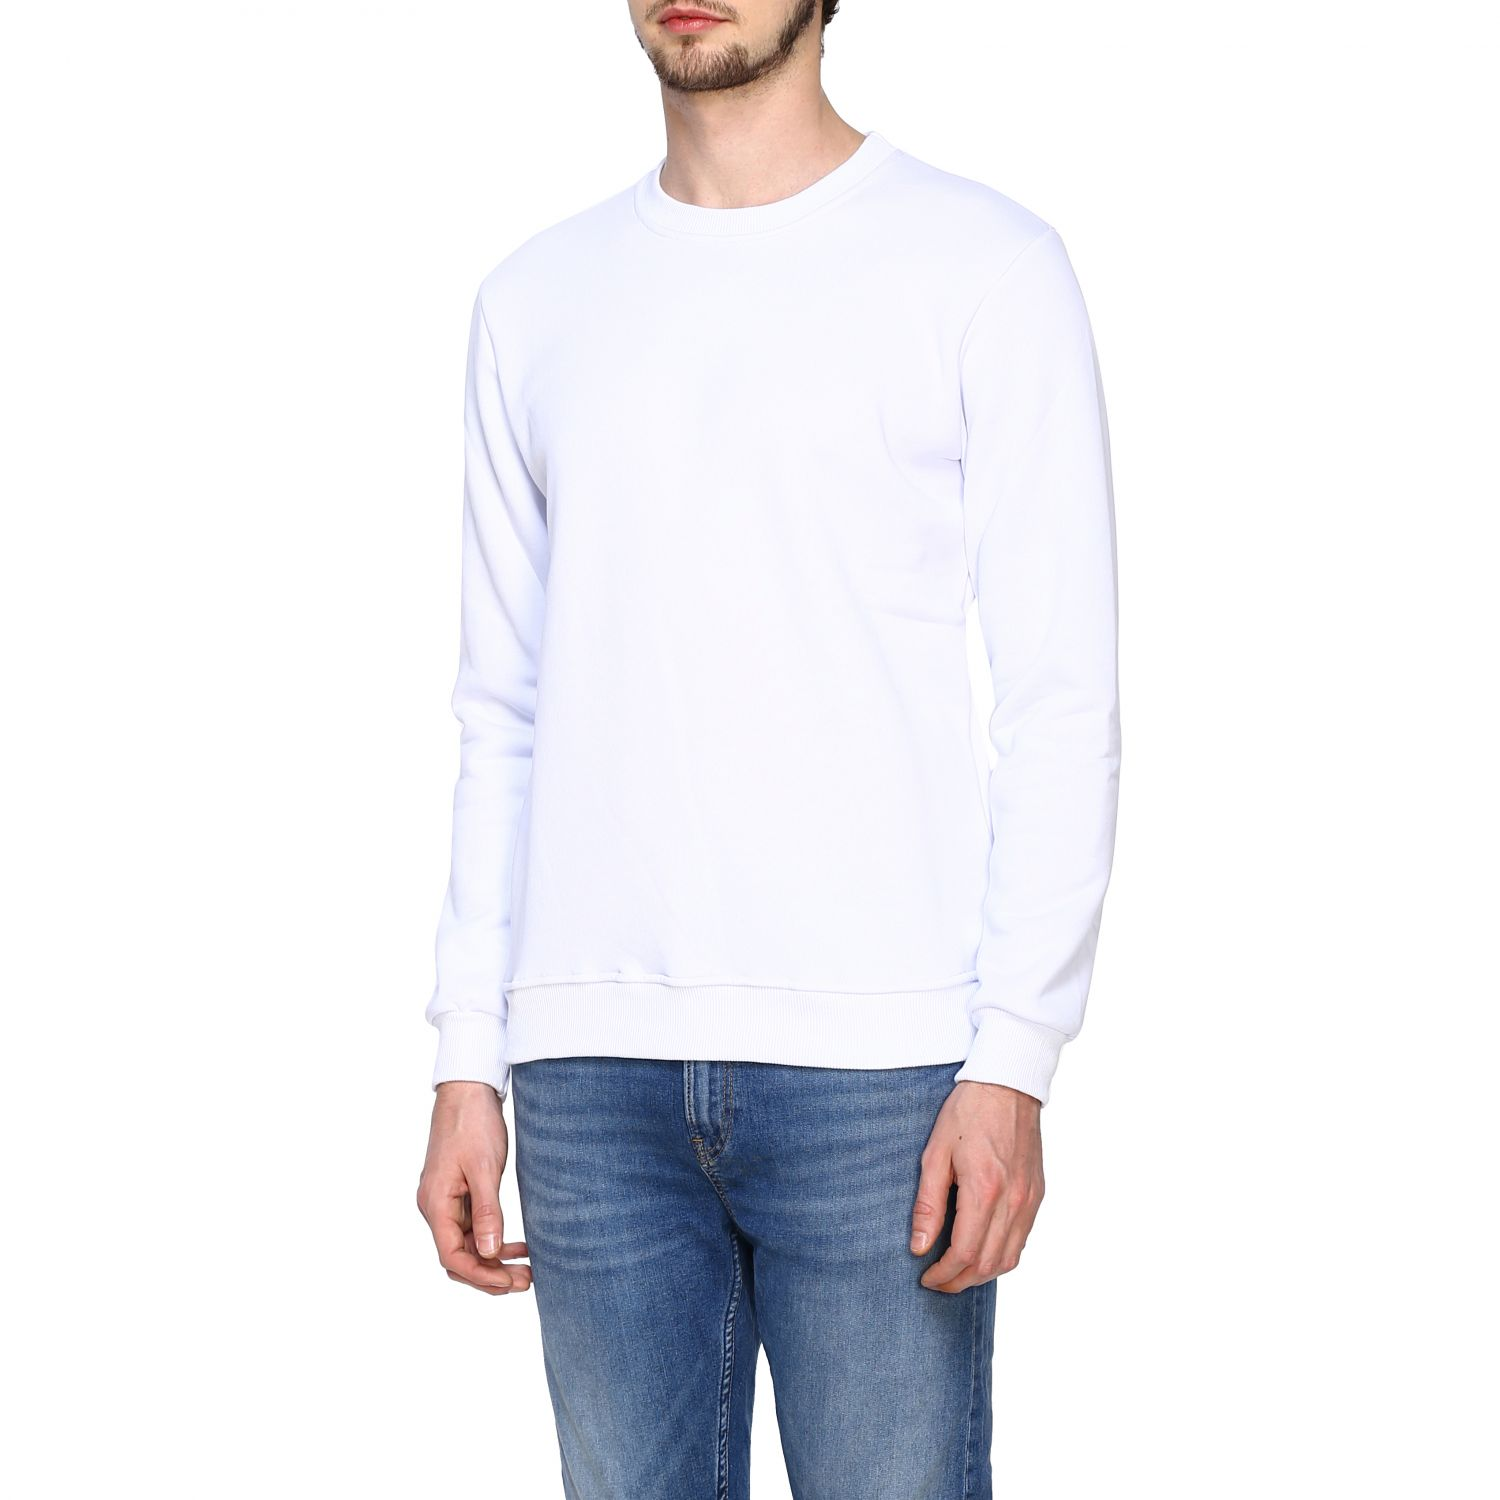 Sweatshirt 1921: Sweatshirt men 1921 white 4